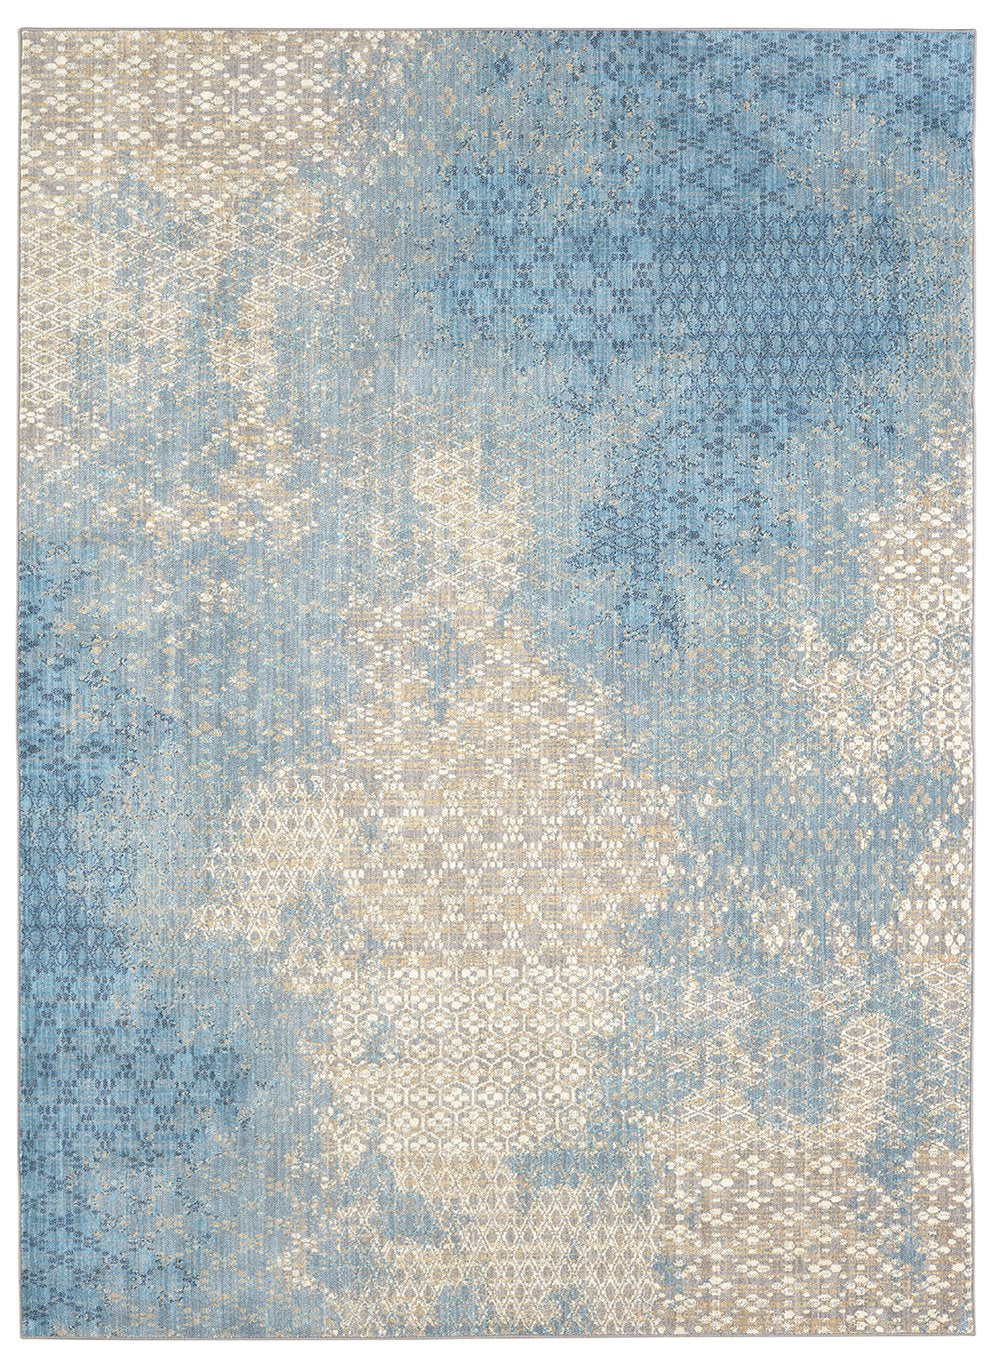 refined area rugs carpet intrigue karastan collection mesmerize aquamarine area rug transitional modern